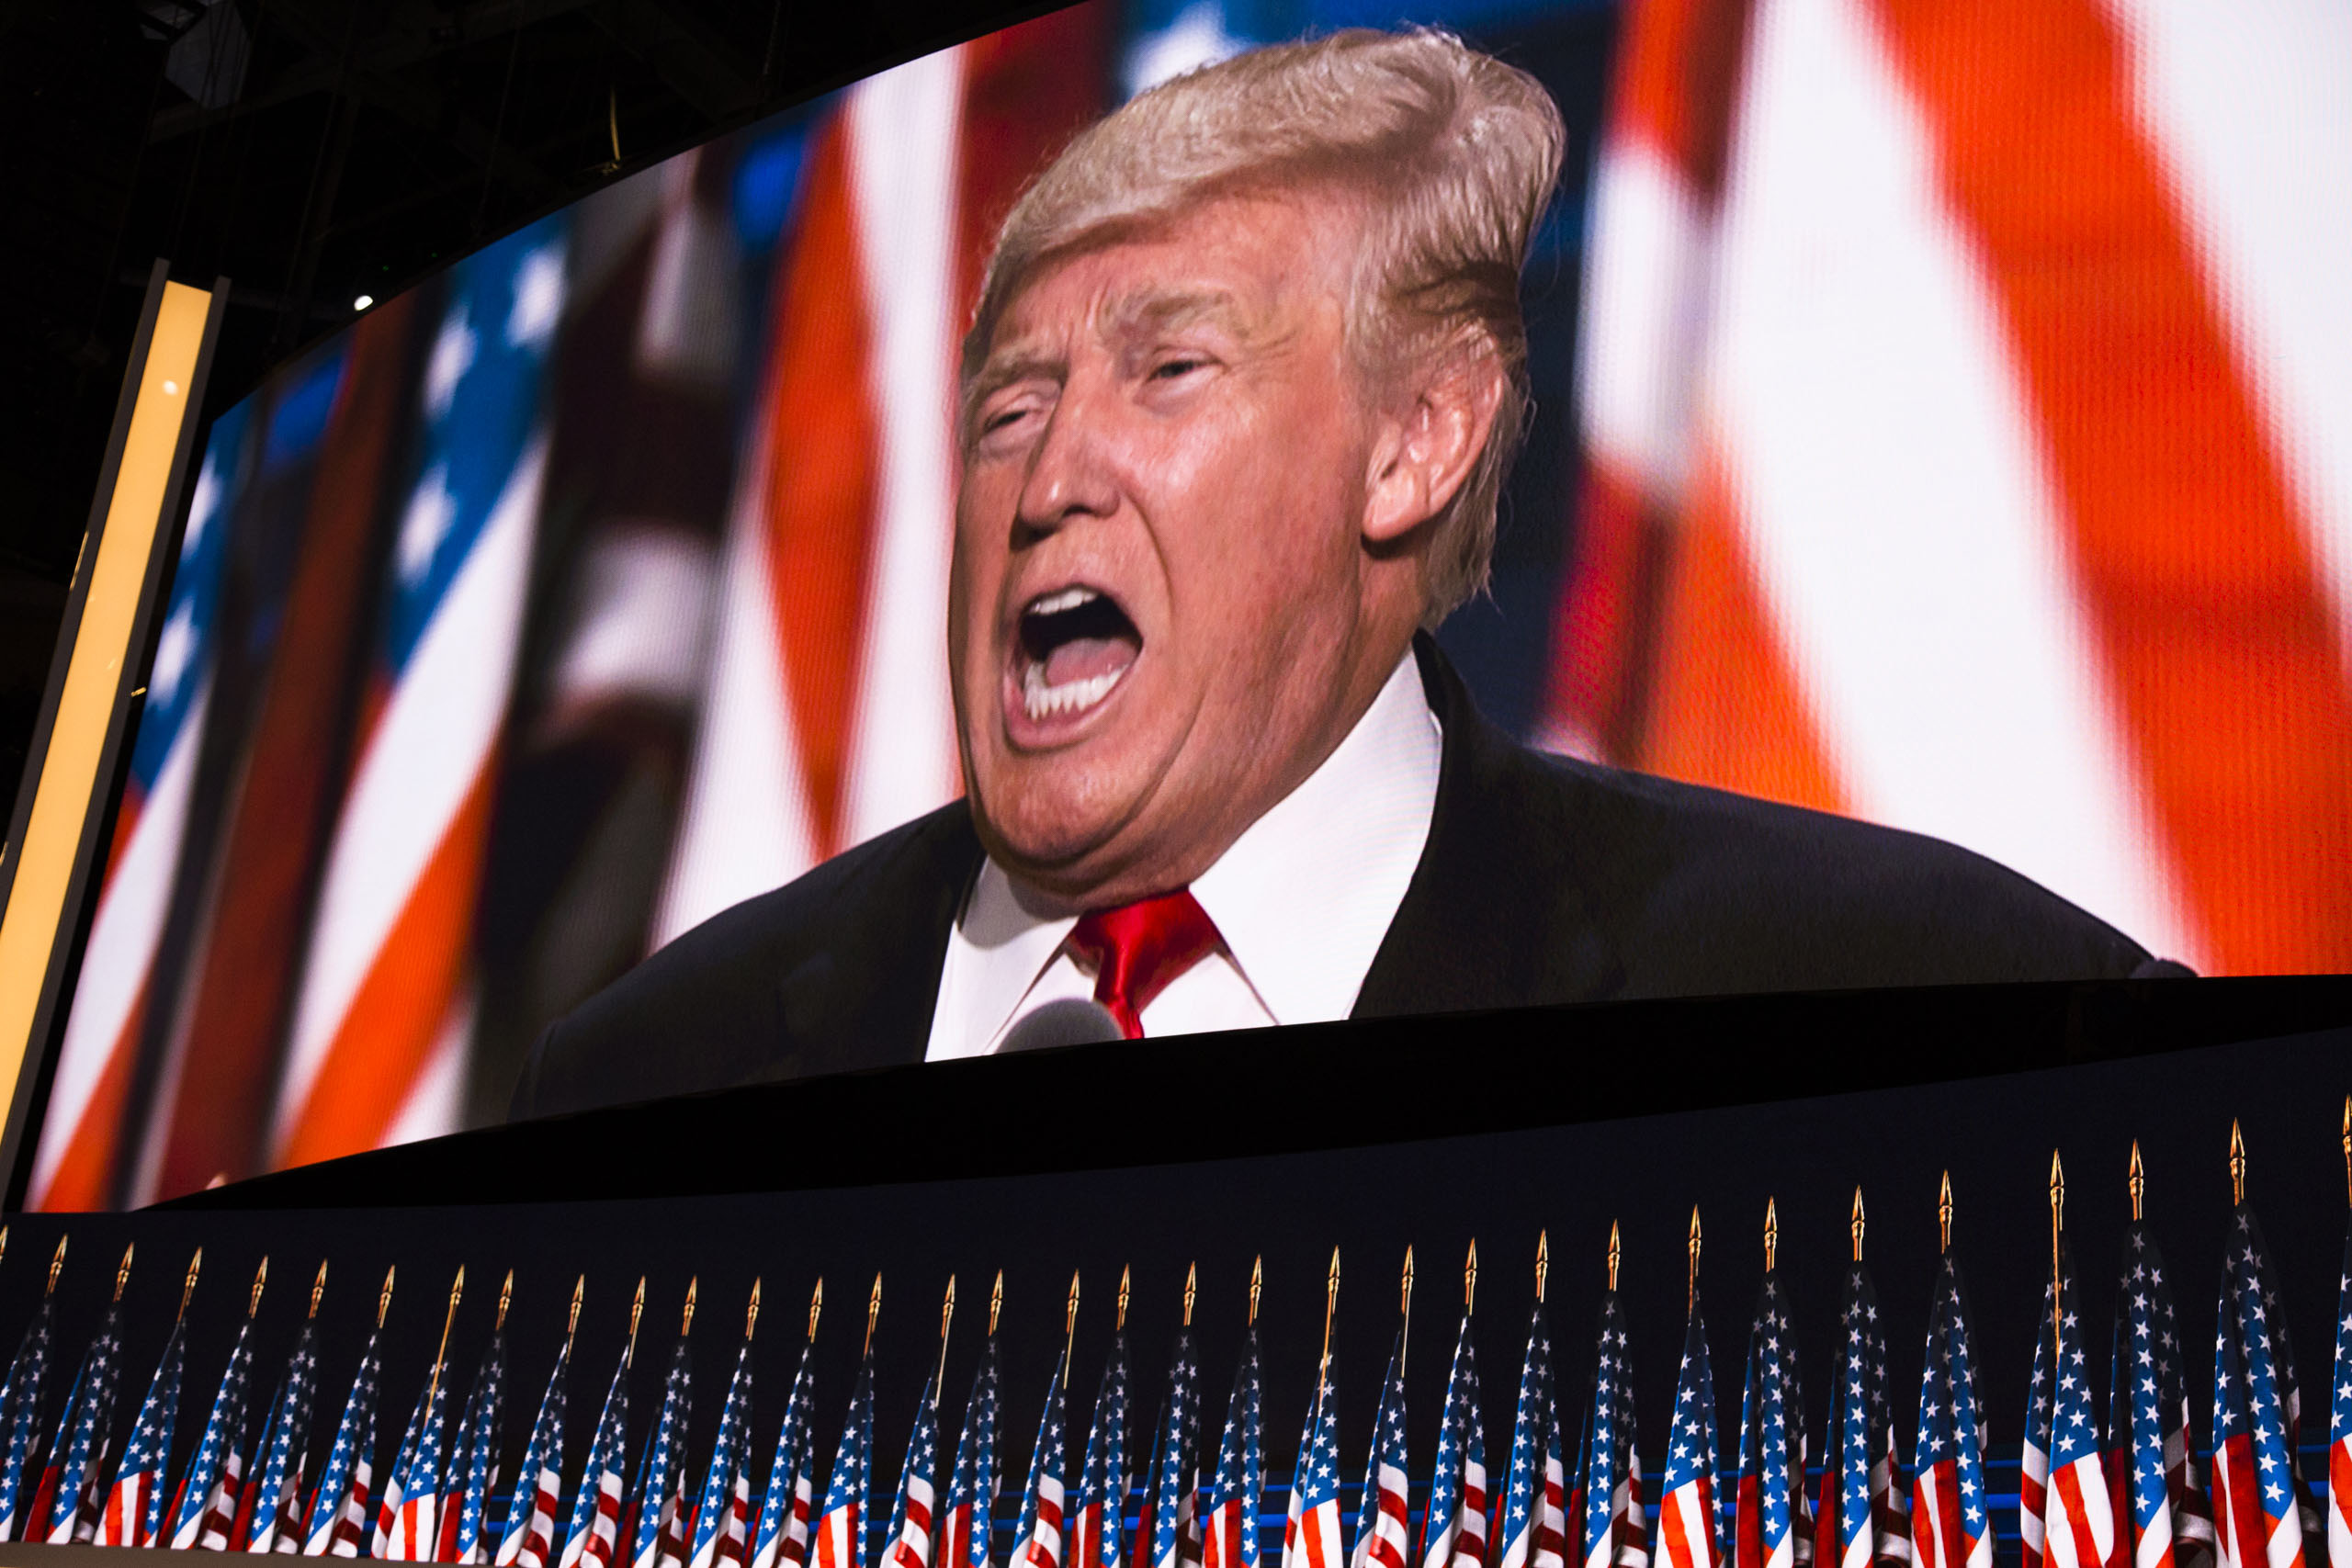 Donald Trump delivers a speech during the evening session on the fourth day of the Republican National Convention at the Quicken Loans Arena in Cleveland, Ohio, on July 21, 2016.